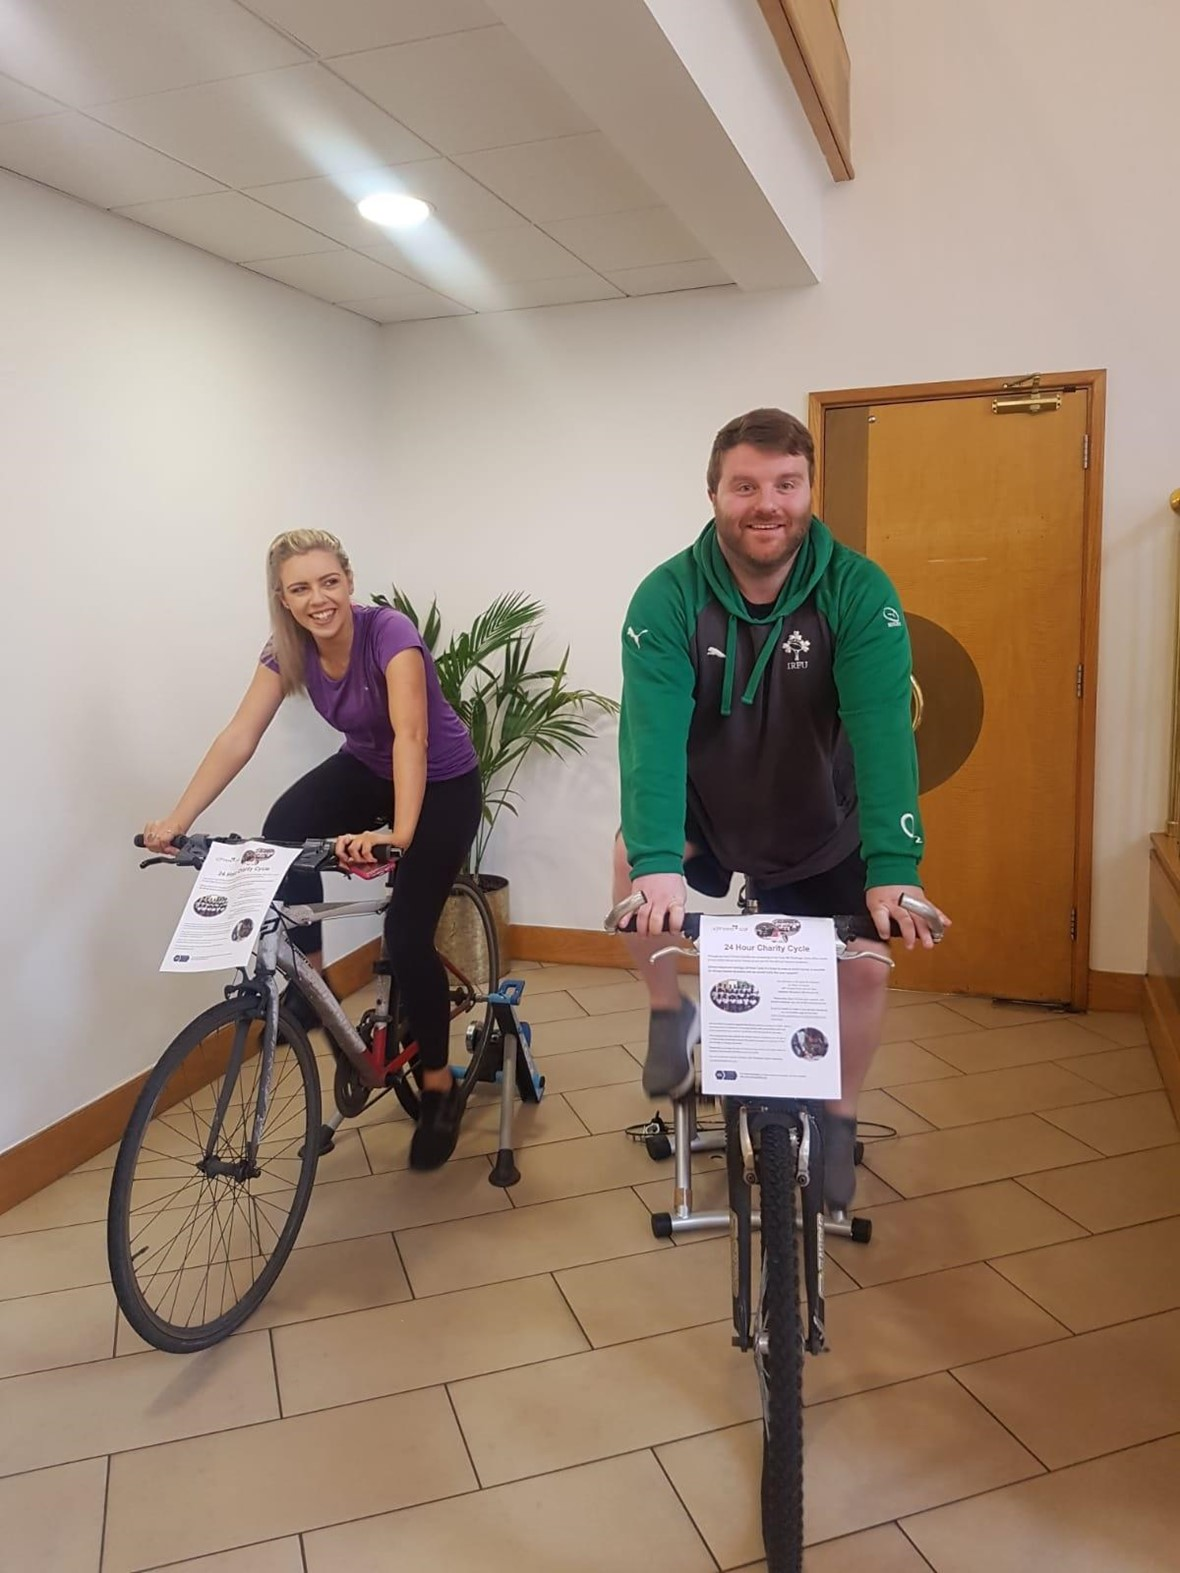 24 hour cycle for ASA as part of our take 50 challenge